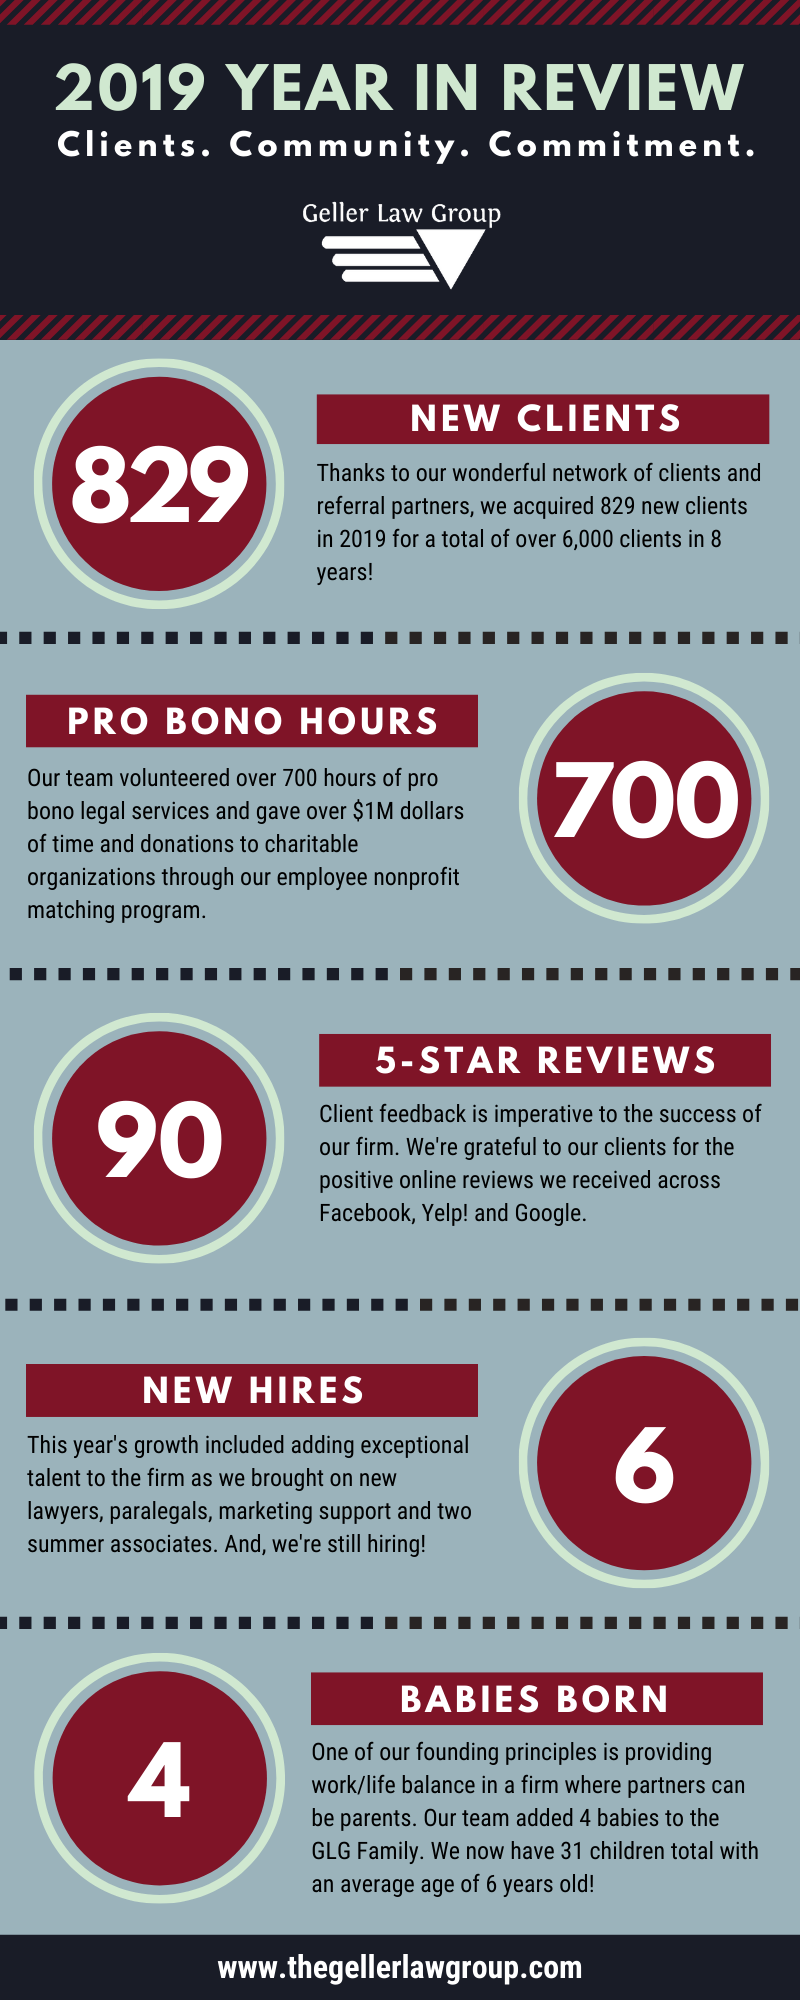 2019 Geller Law Group Year in Review - Infographic